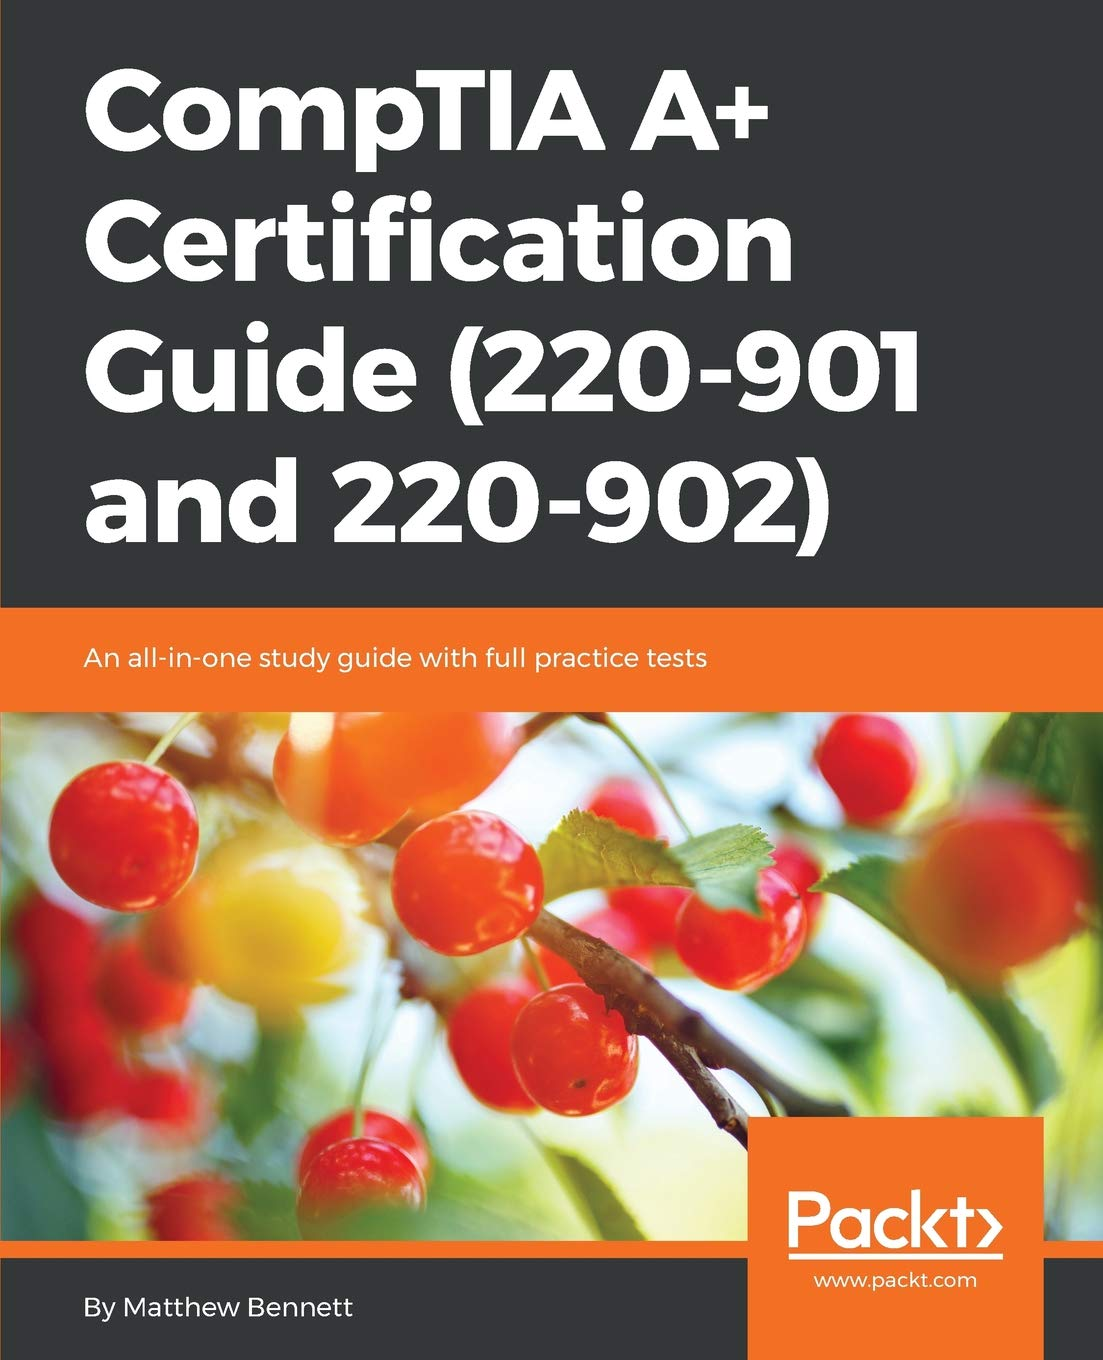 CompTIA A+ Certification Guide (220-901 and 220-902): An all-in-one study  guide with full practice tests: Matthew Bennett: 9781787127302: Amazon.com:  Books